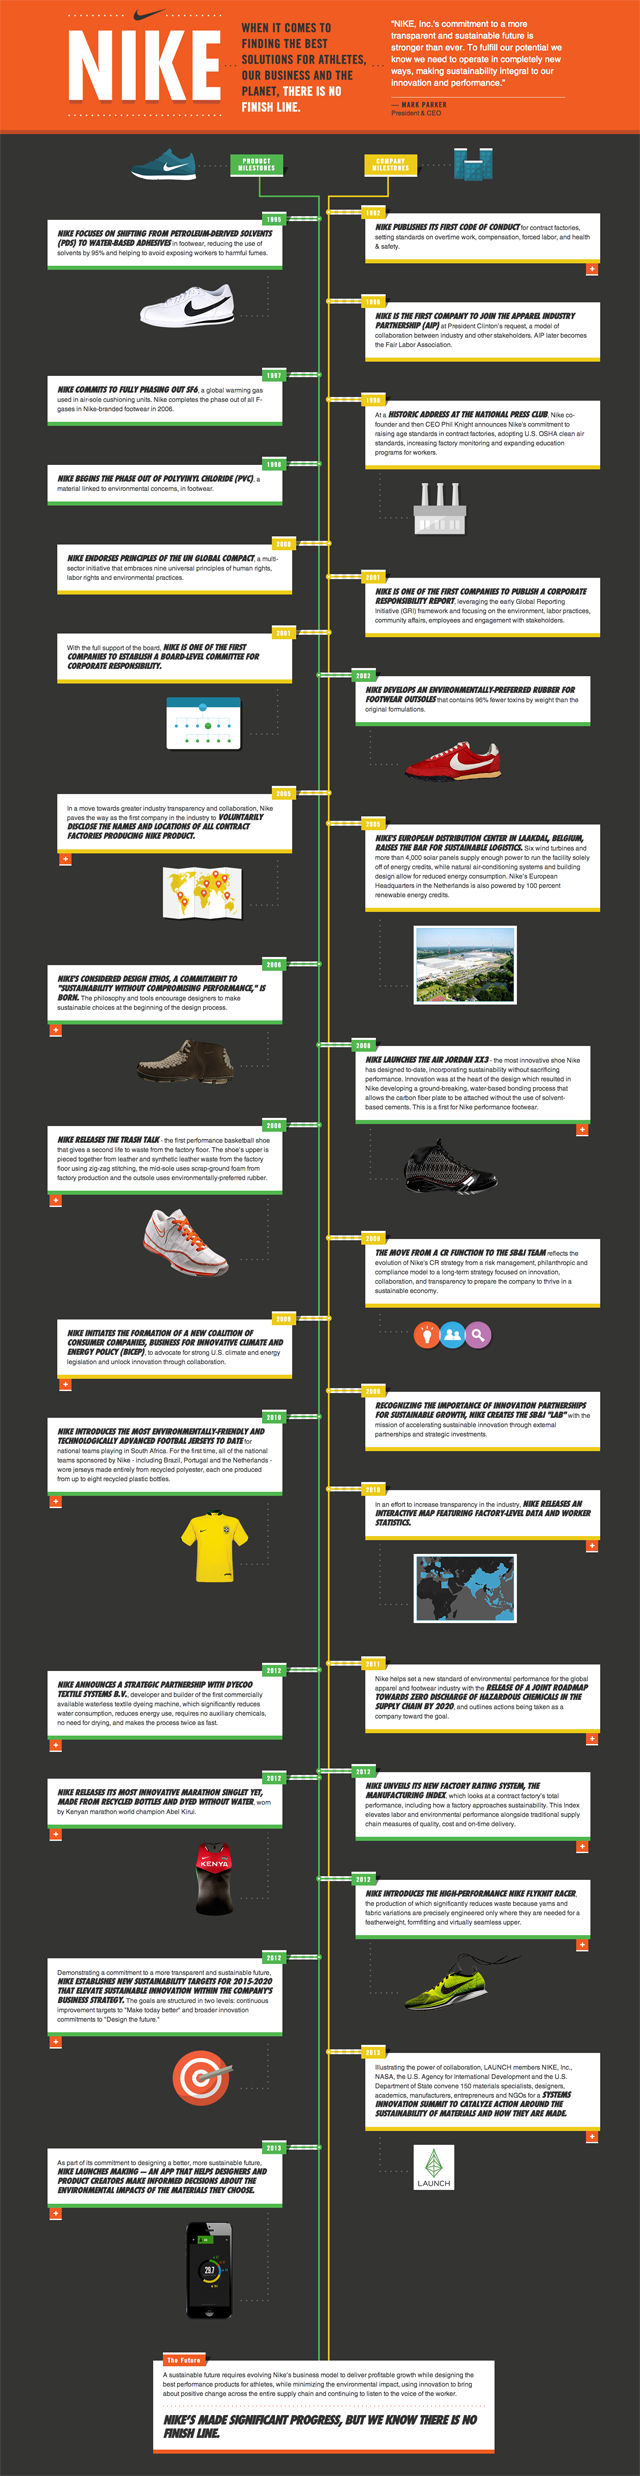 Nike Sustainable Innovation History